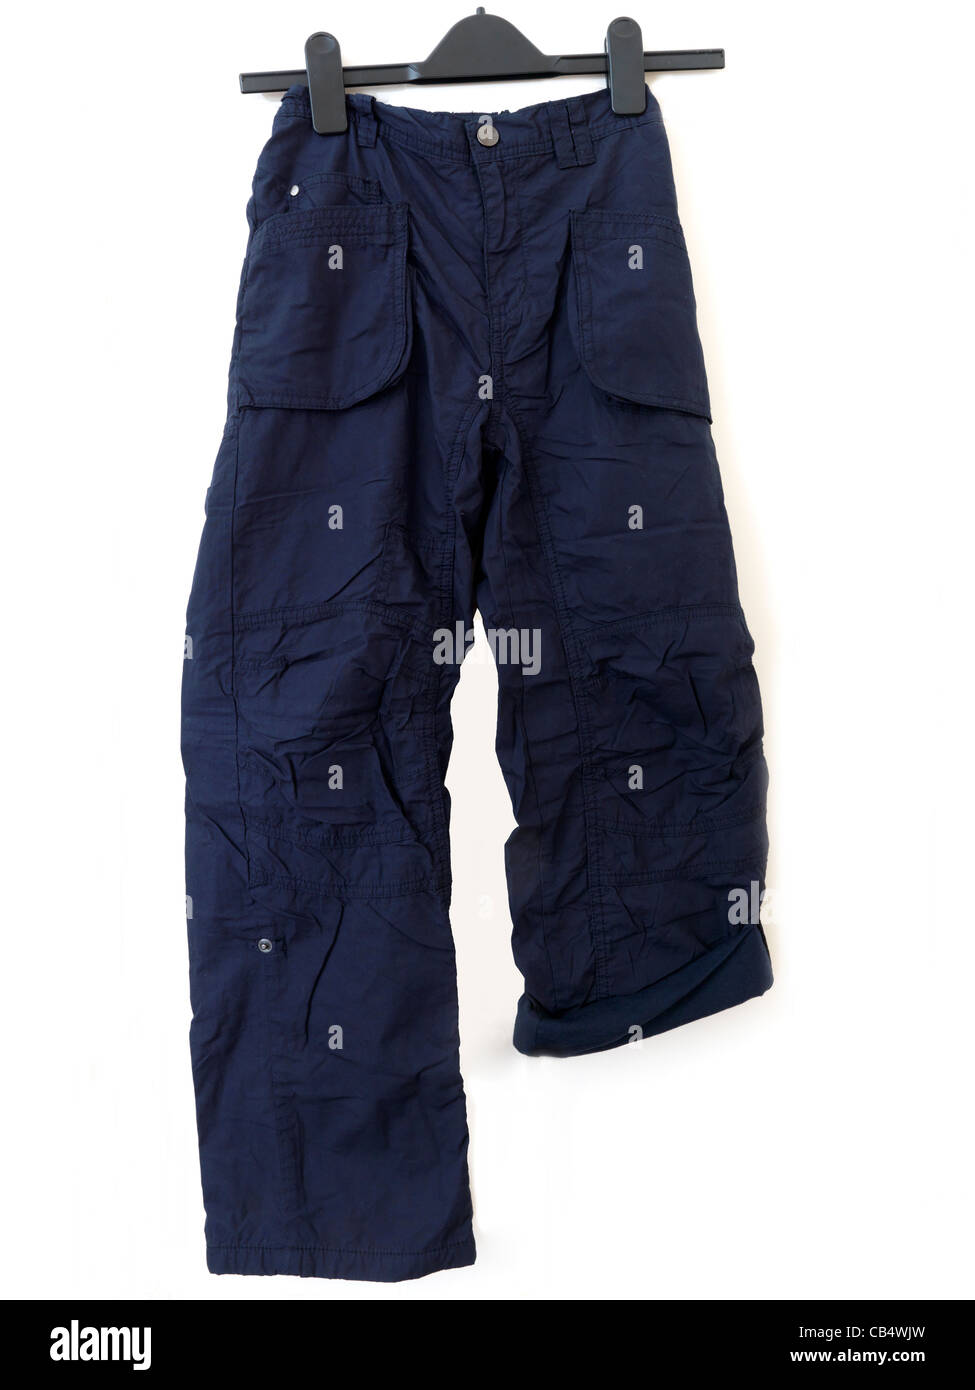 A Pair Of Boy's Cargo Trousers With One Leg Buttoned Up - Stock Image